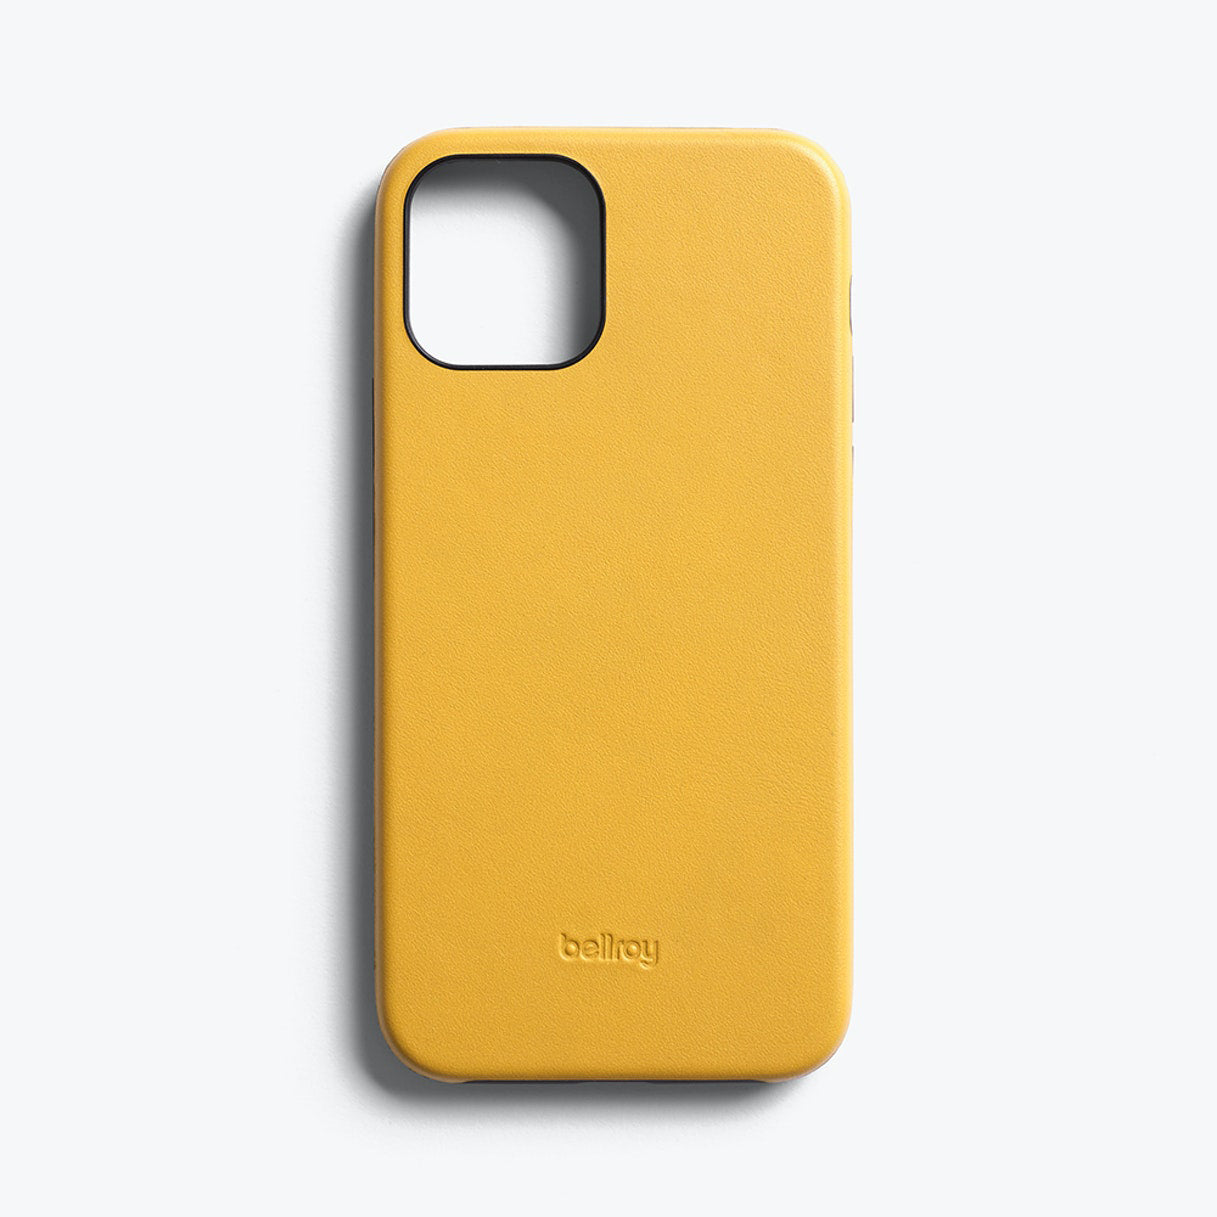 Bellroy Slim Genuine Leather Case For iPhone iPhone 12 / 12 Pro - LEMON